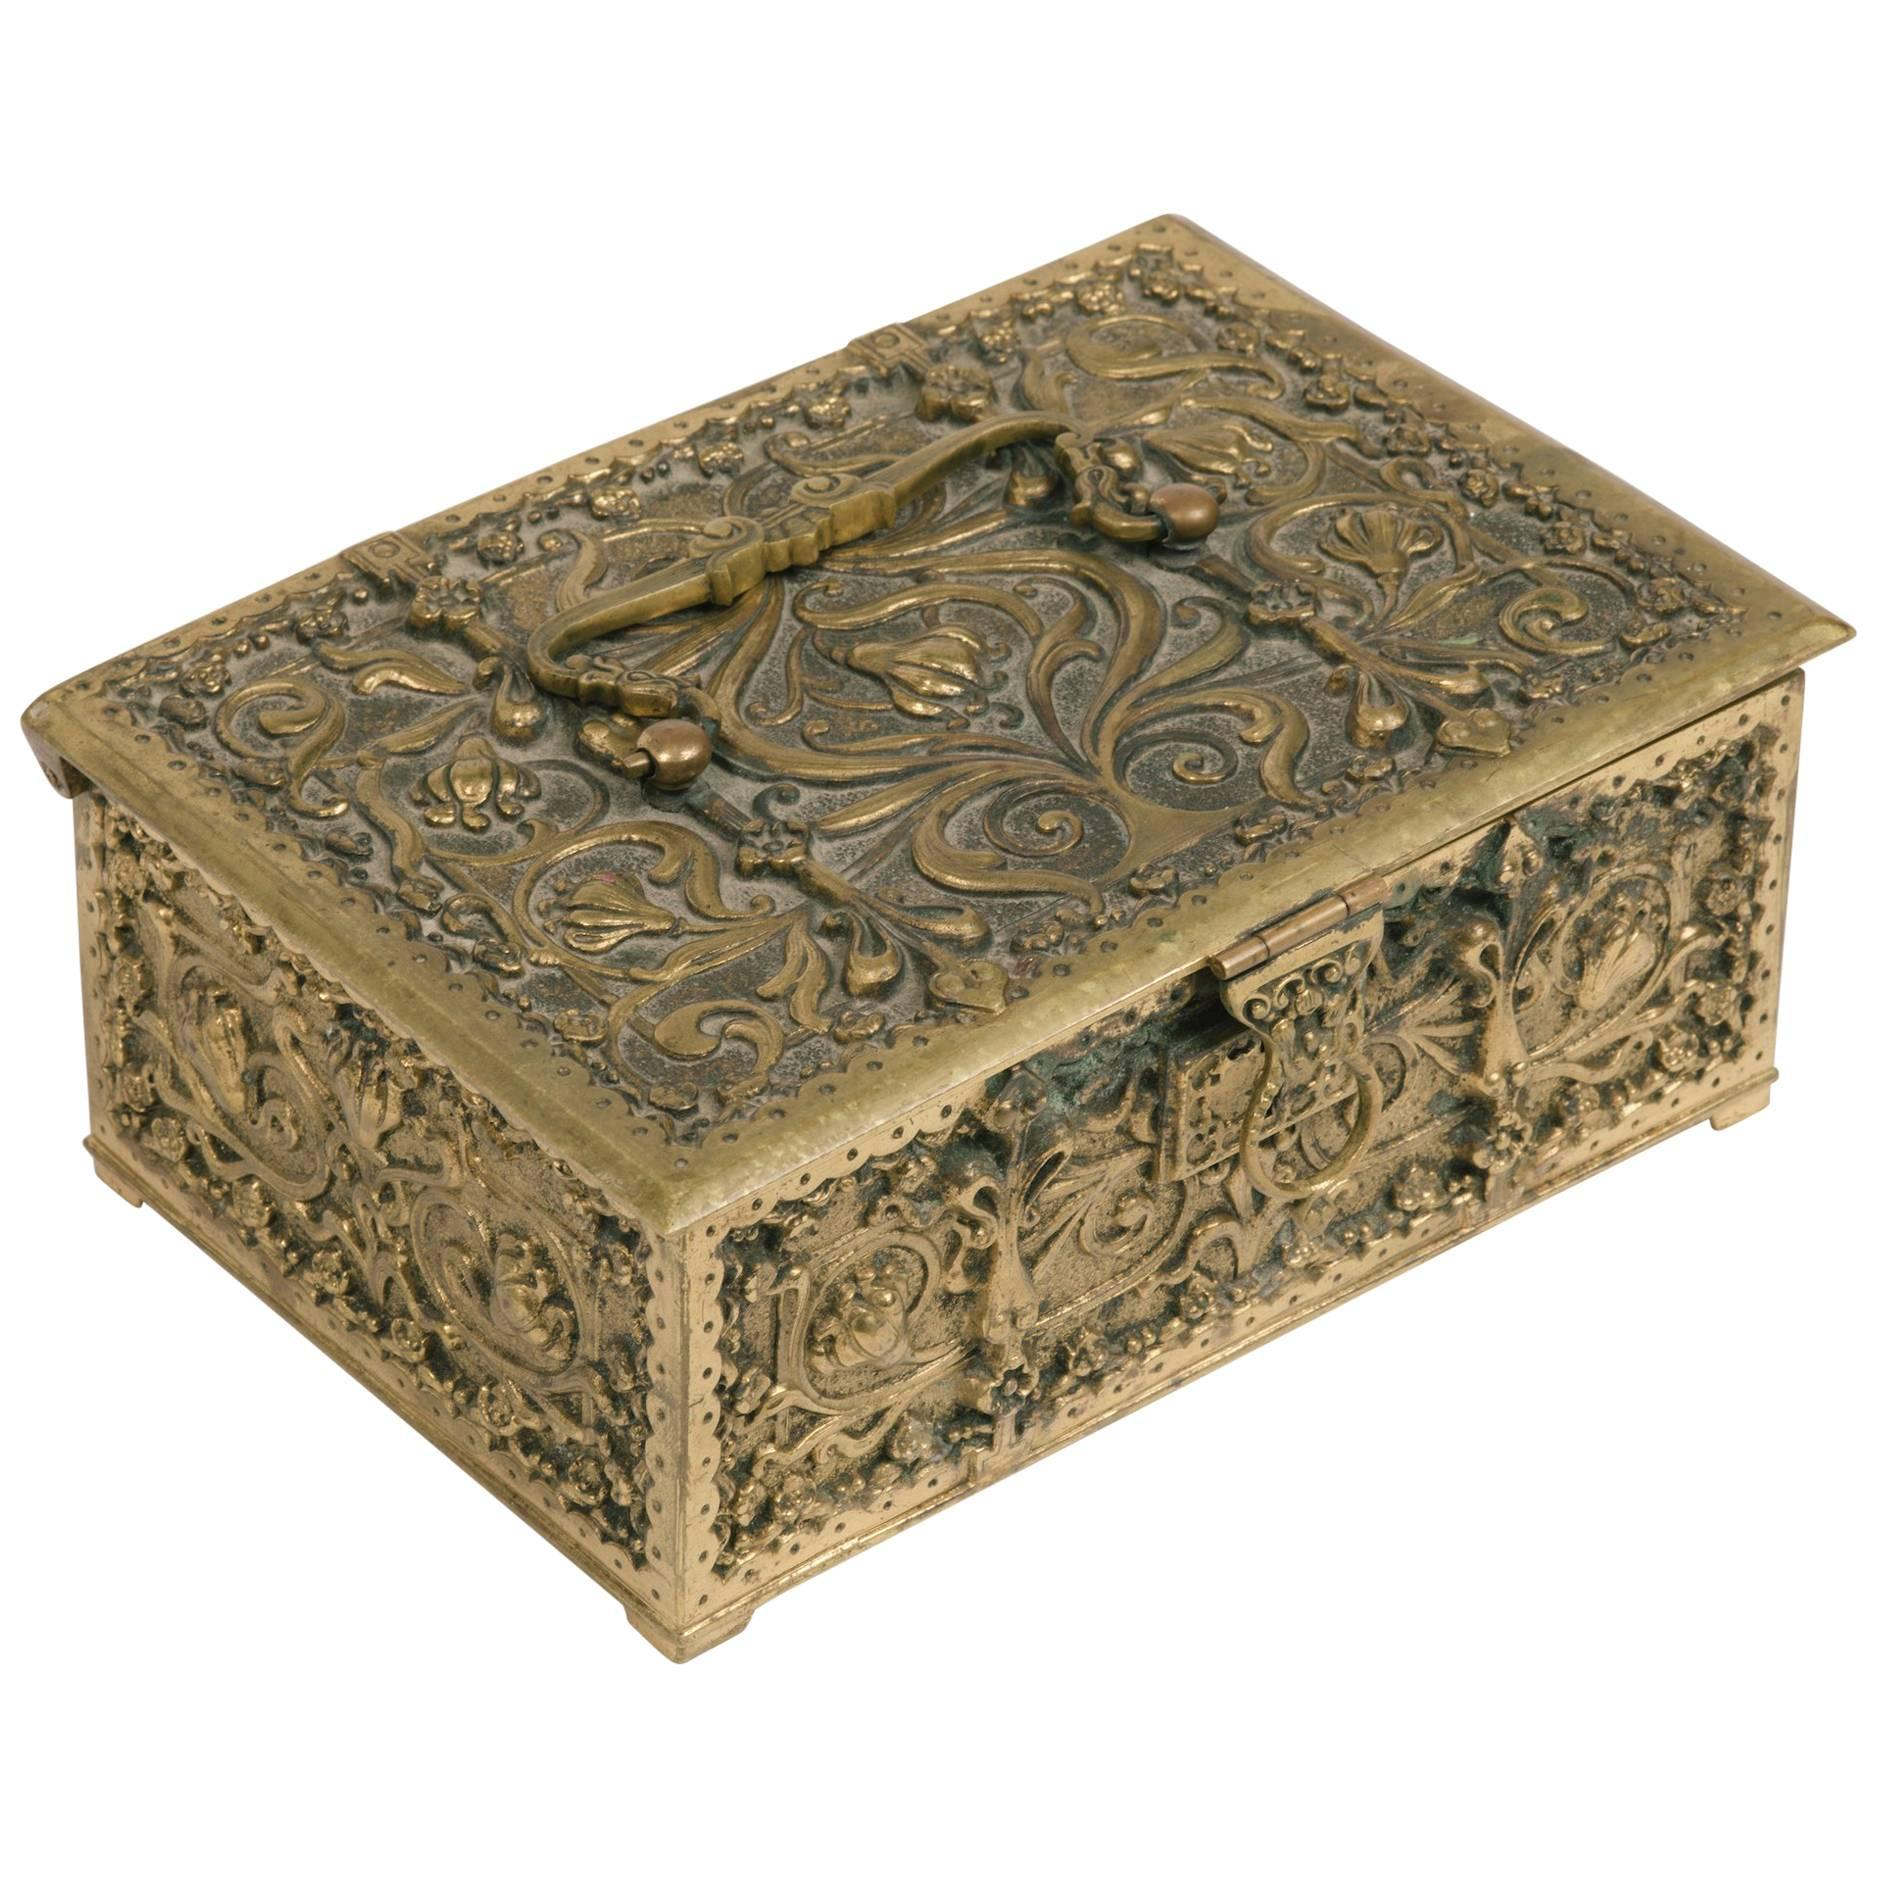 1880s English Brass Gothic Box with Handle